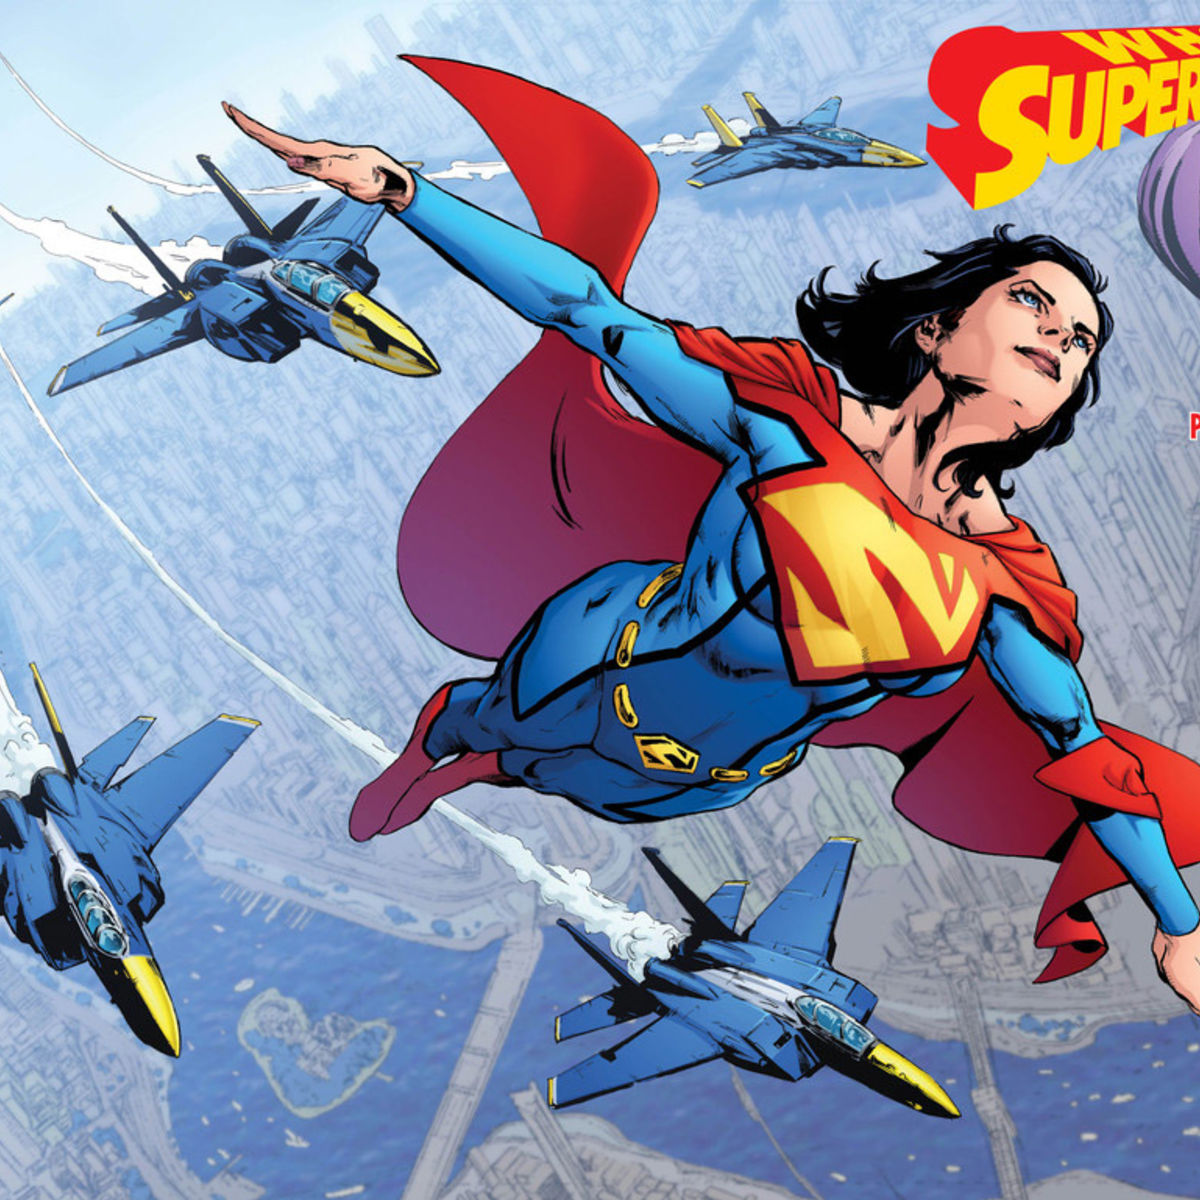 superwoman comic.jpg